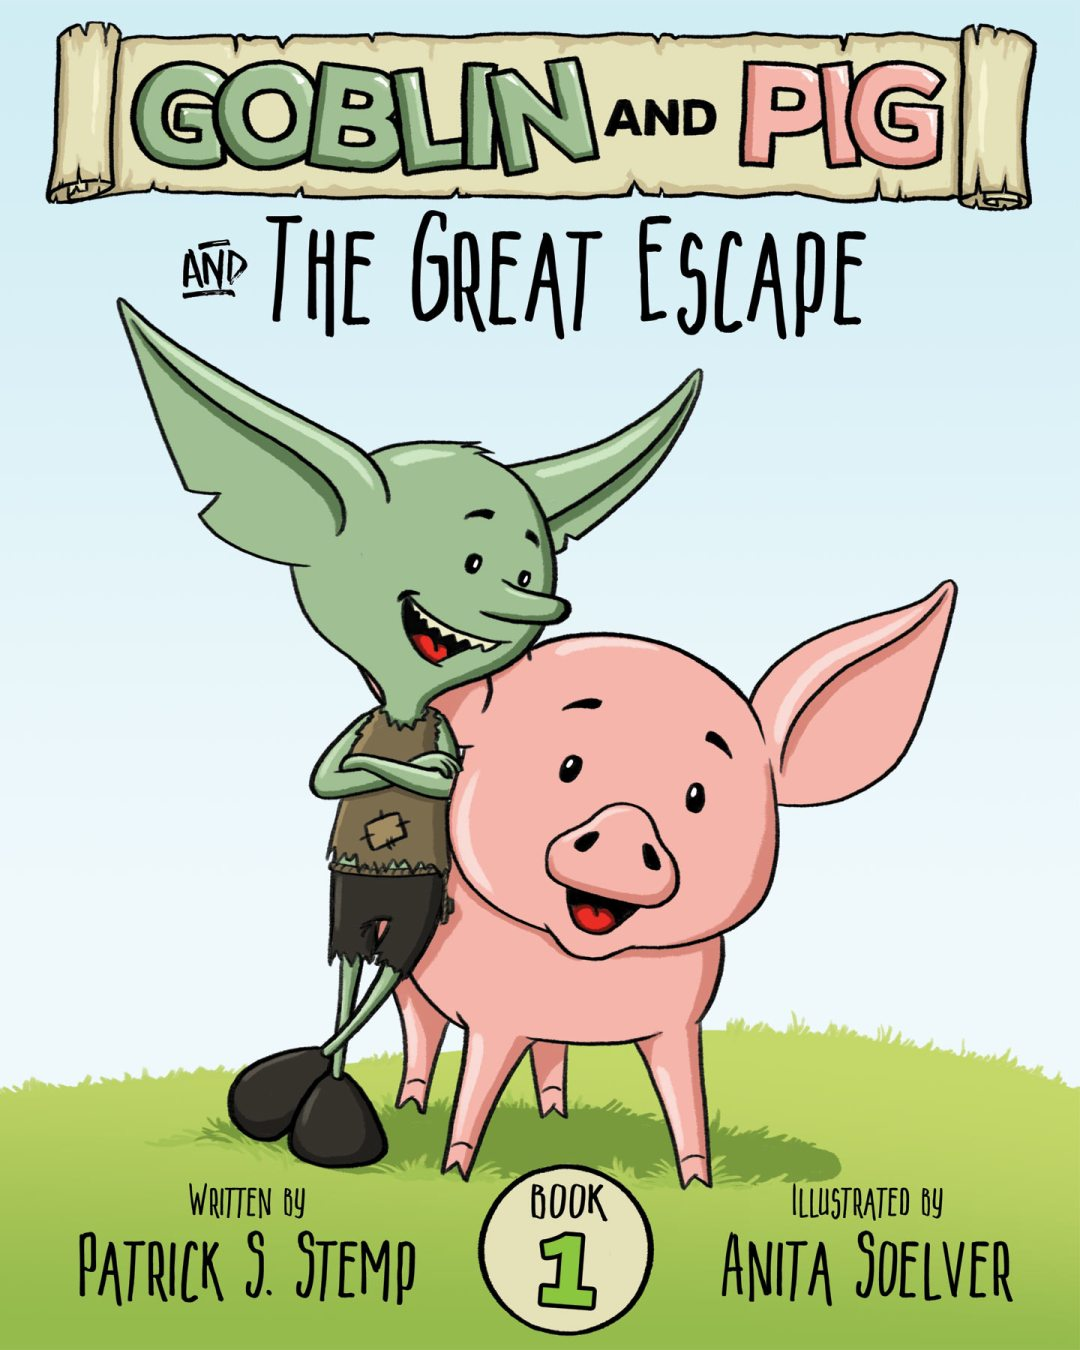 Goblin and Pig: The Great Escape by Patrick S. Stemp & Anita Soelver